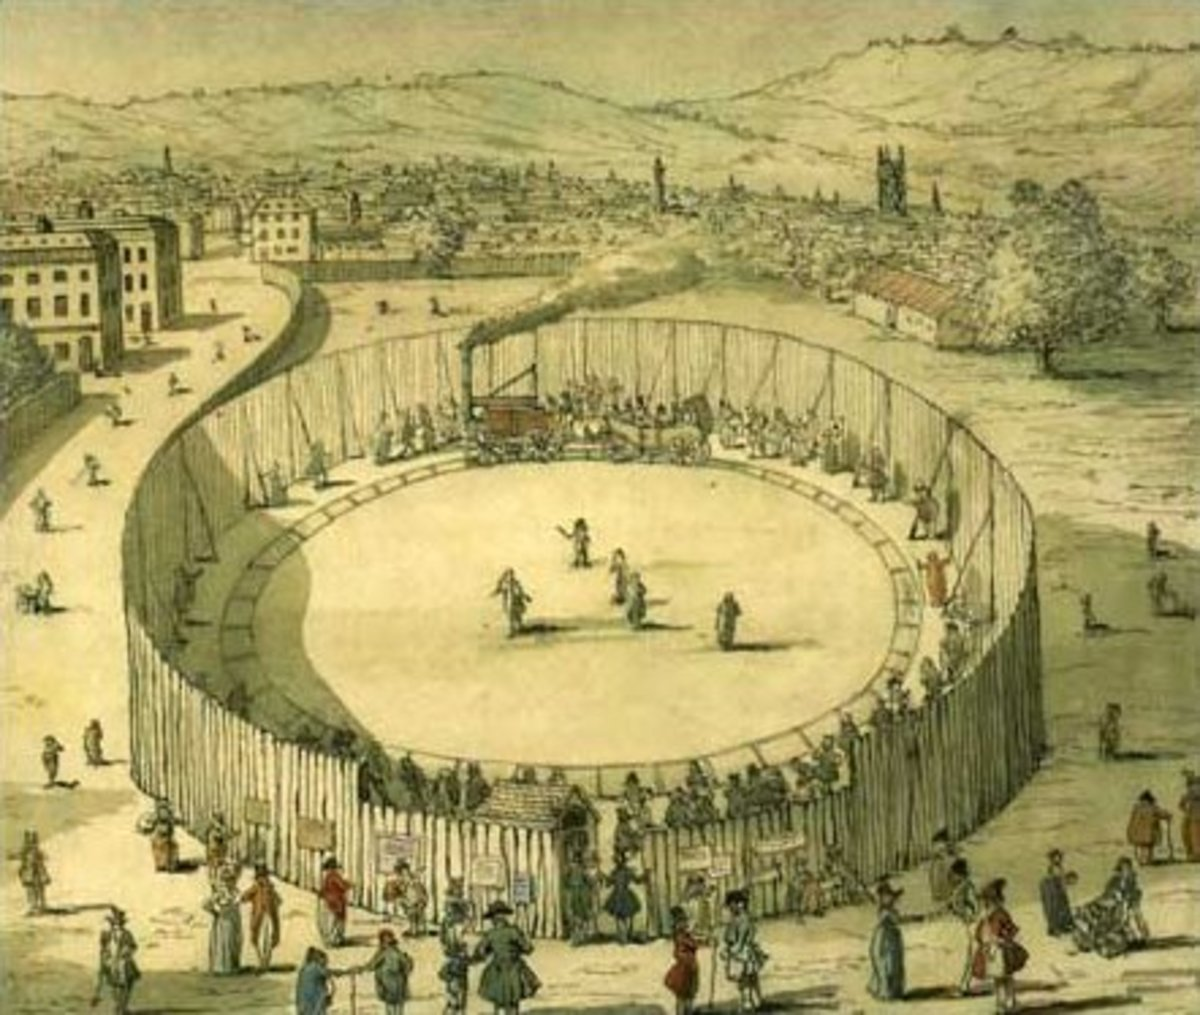 Exhibit: Trevithick's steam circus